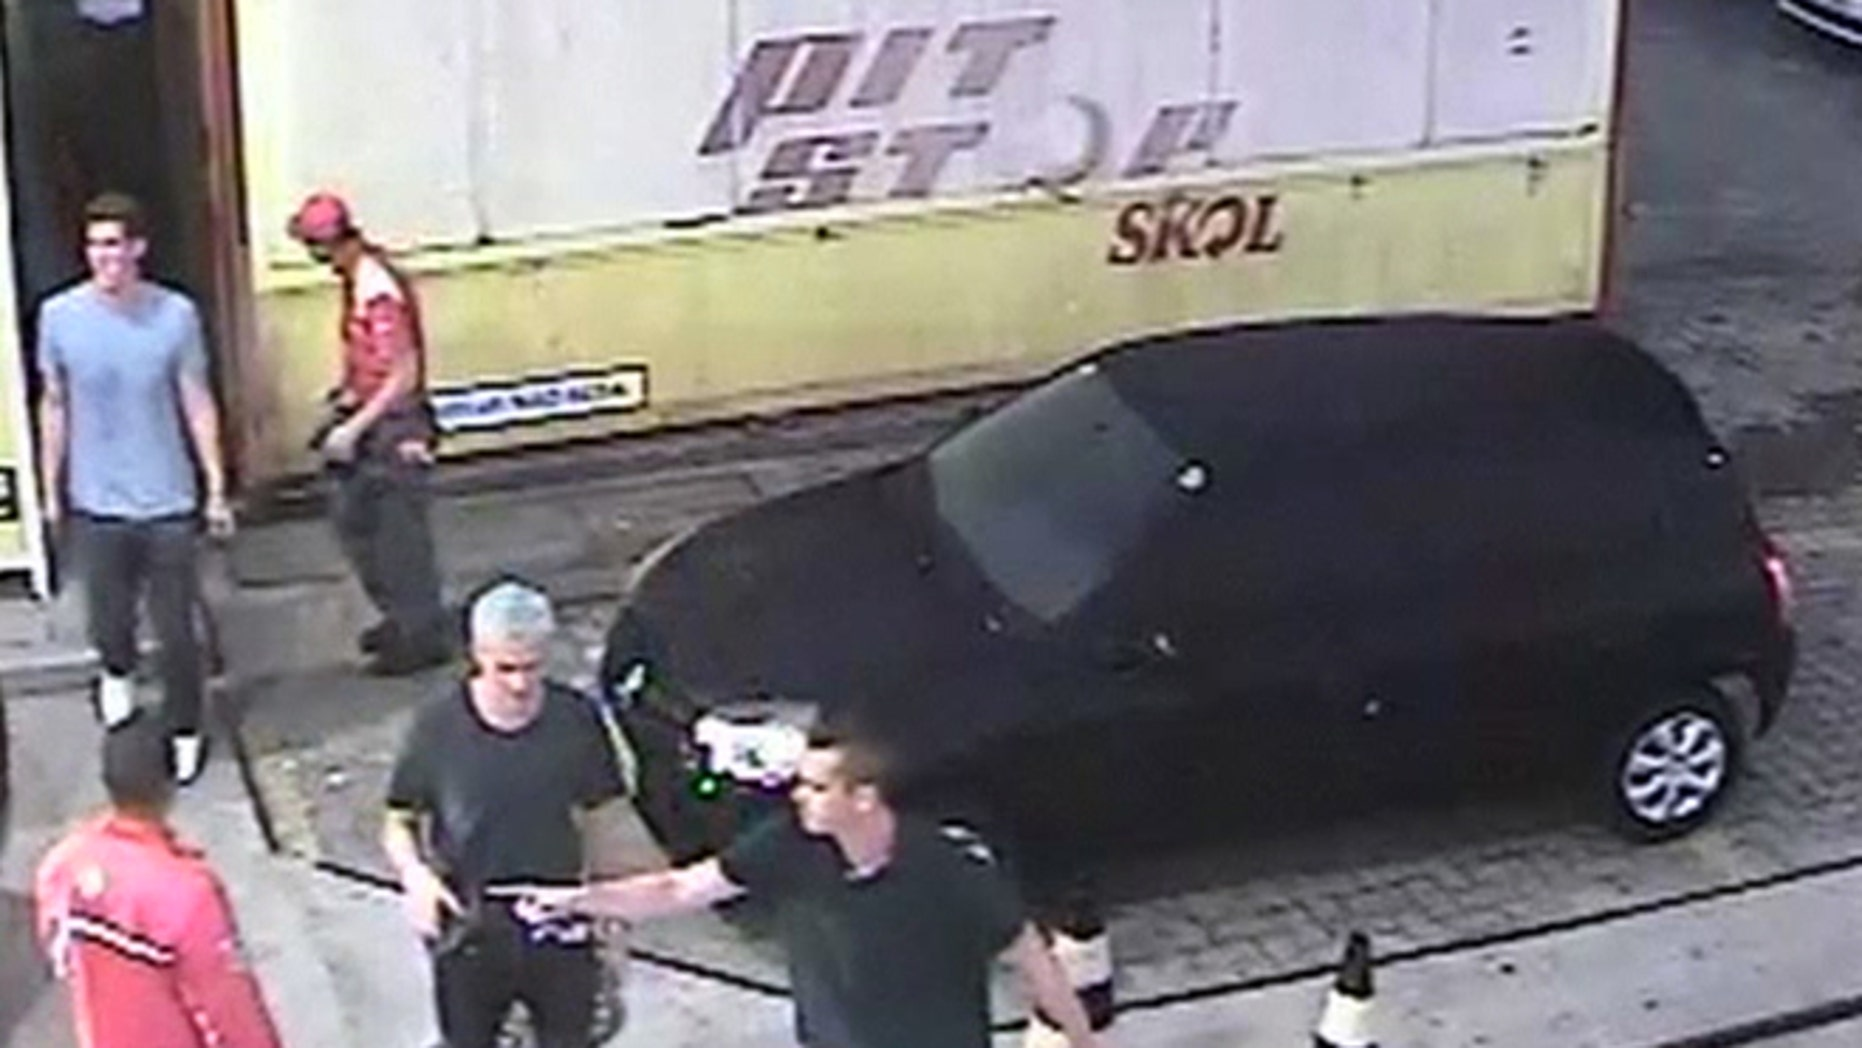 In this Sunday, Aug. 14, 2016 frame from surveillance video released by Brazil Police, swimmer Ryan Lochte, second from right, of the United States, and teammates, appear at a gas station during the 2016 Summer Olympics in Rio de Janeiro, Brazil. A top Brazil police official said the swimmers damaged property at the gas station. (Brazil Police via AP)